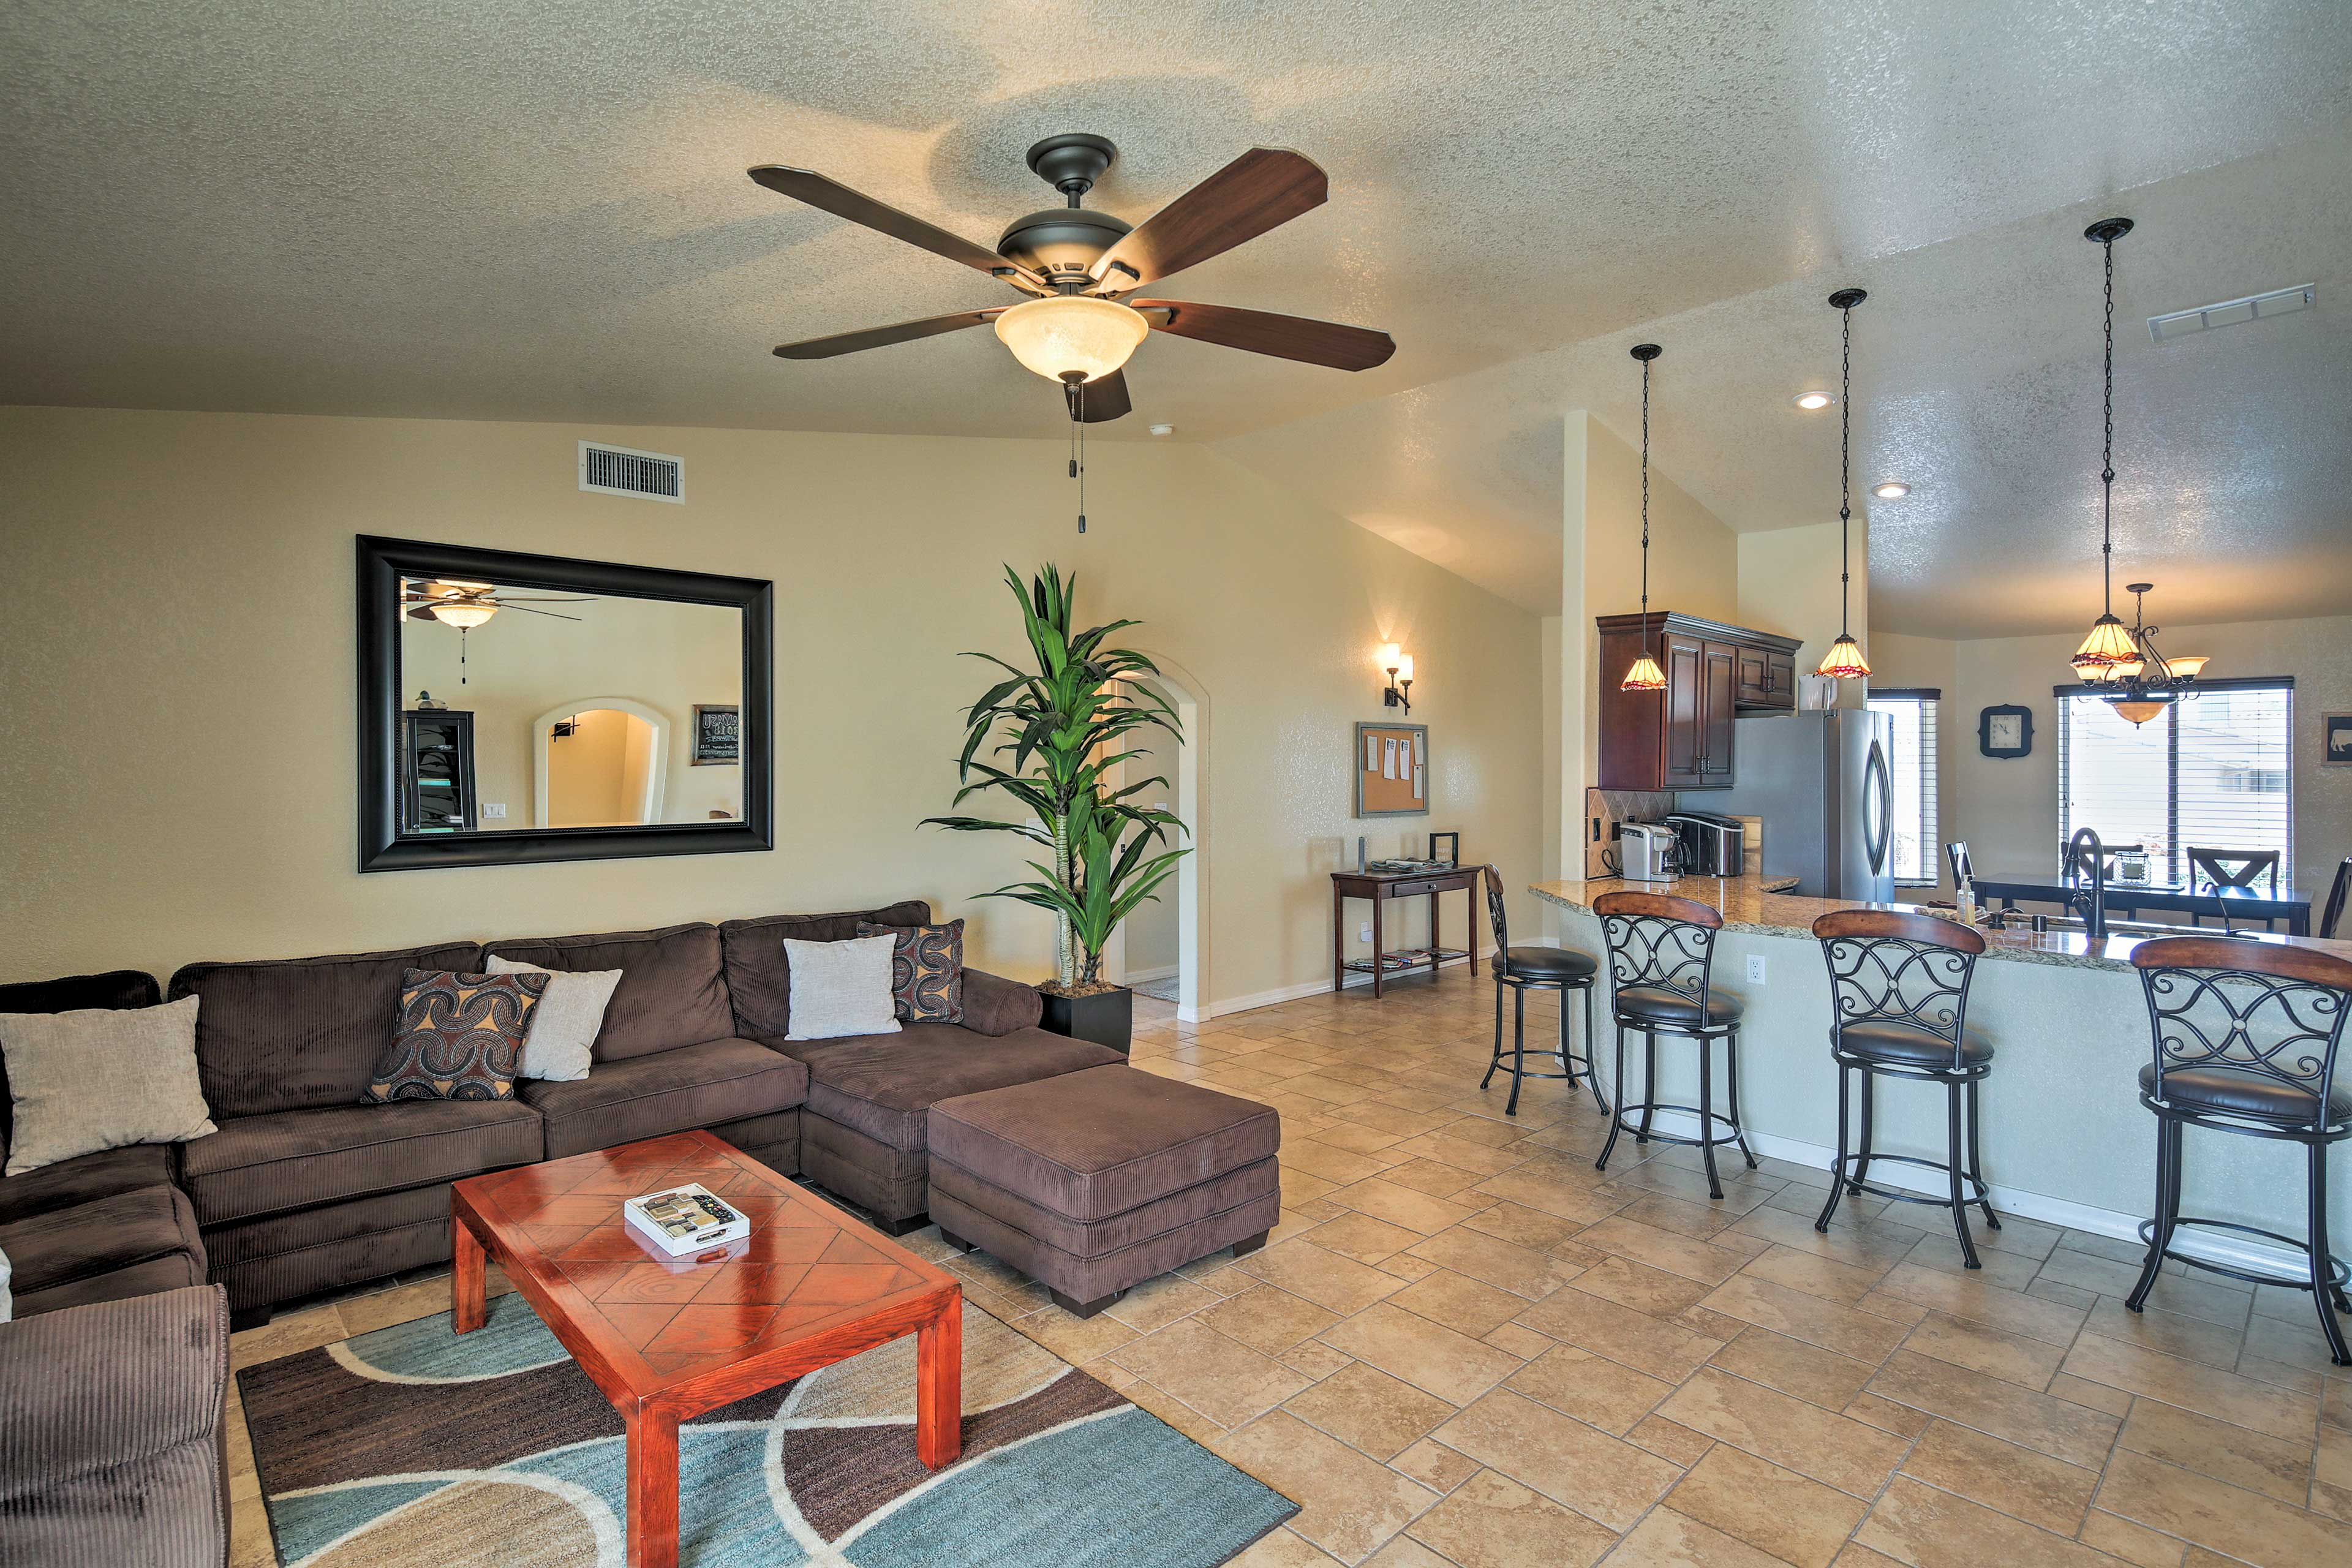 This recently renovated home is just minutes from major area attractions.